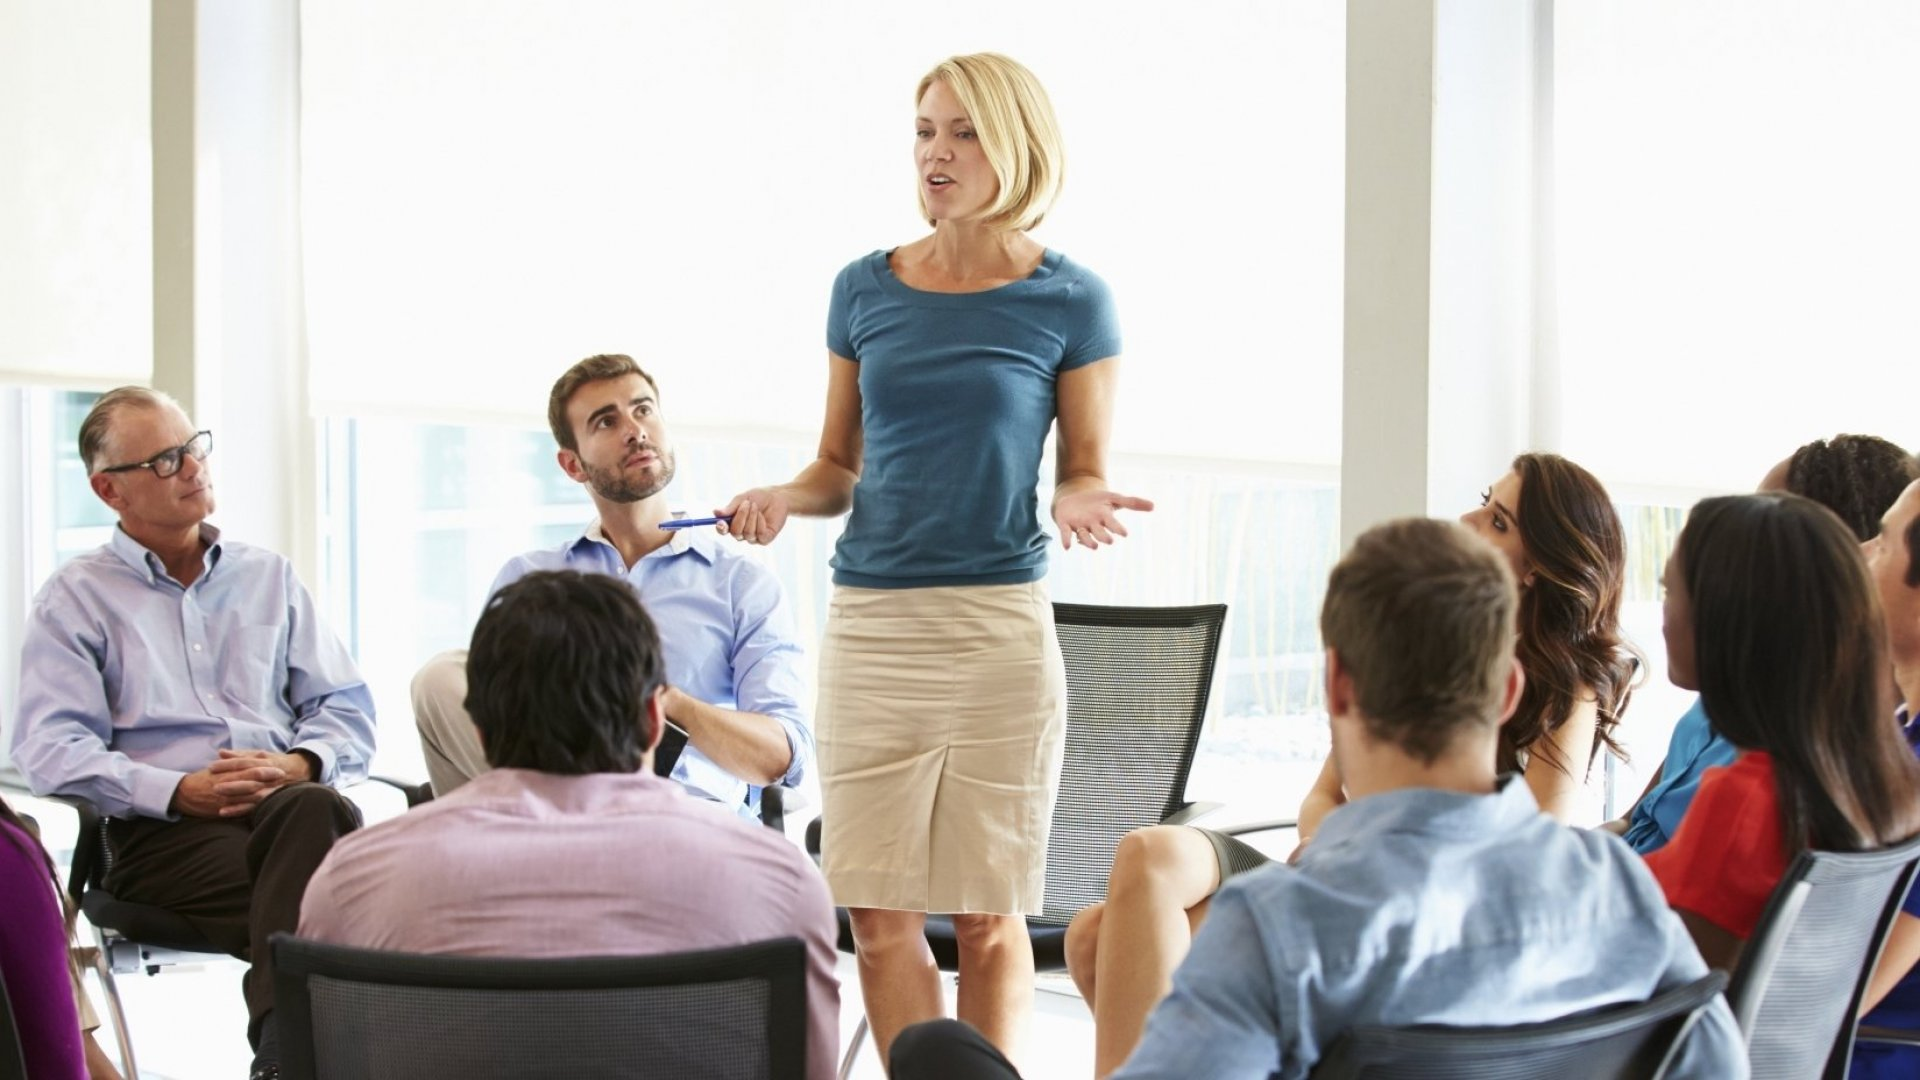 5 Small Changes That Will Make You a Much Better Communicator